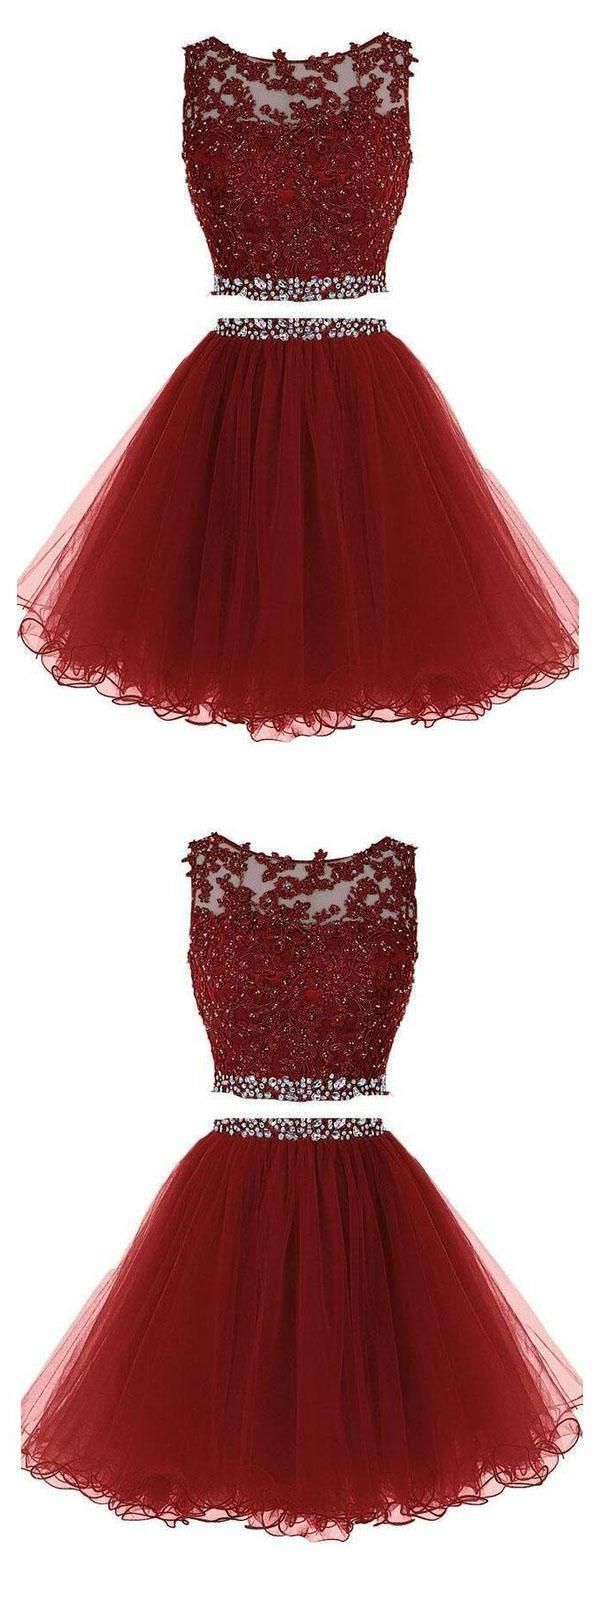 Custom Made Admirable Homecoming Dress 2019, Homecoming Dress Lace, Burgundy Homecoming Dress, Short Homecoming Dress #homecomingdressesshort